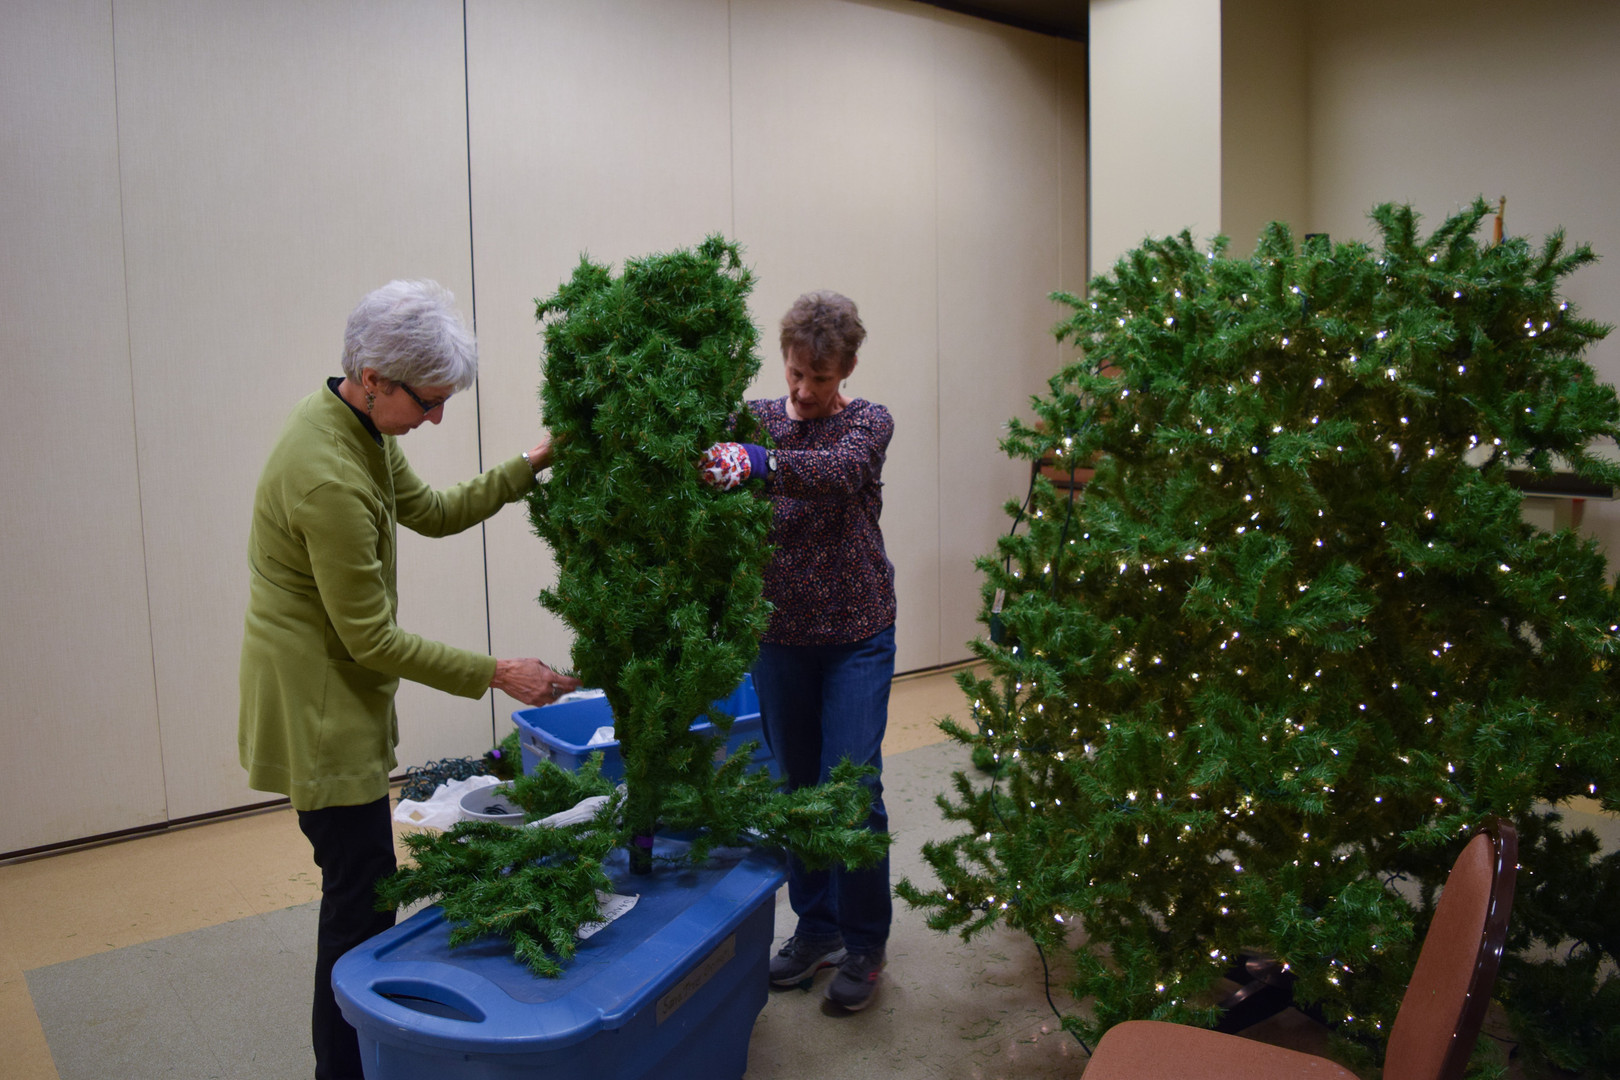 These ladies got the sanctuary tree started early